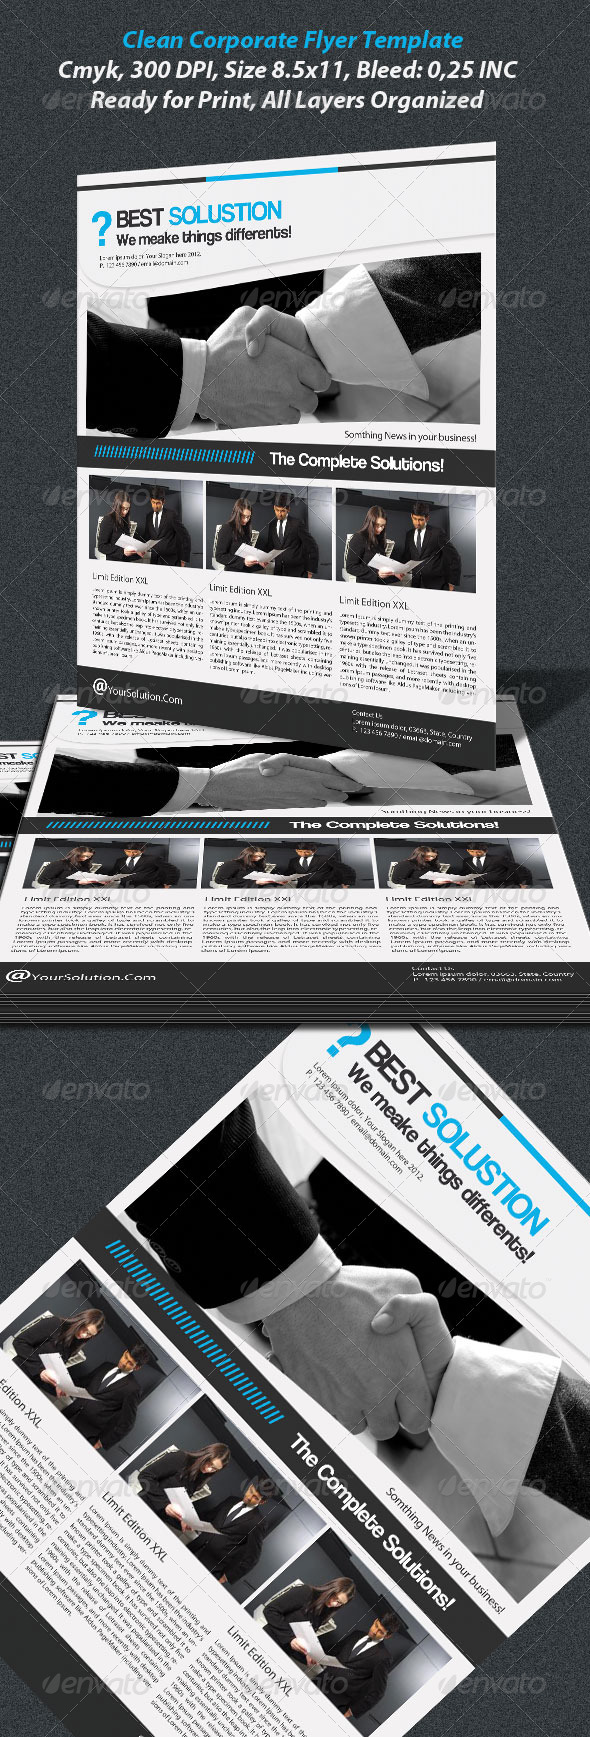 Clean Corporate Flayer Template - Corporate Flyers